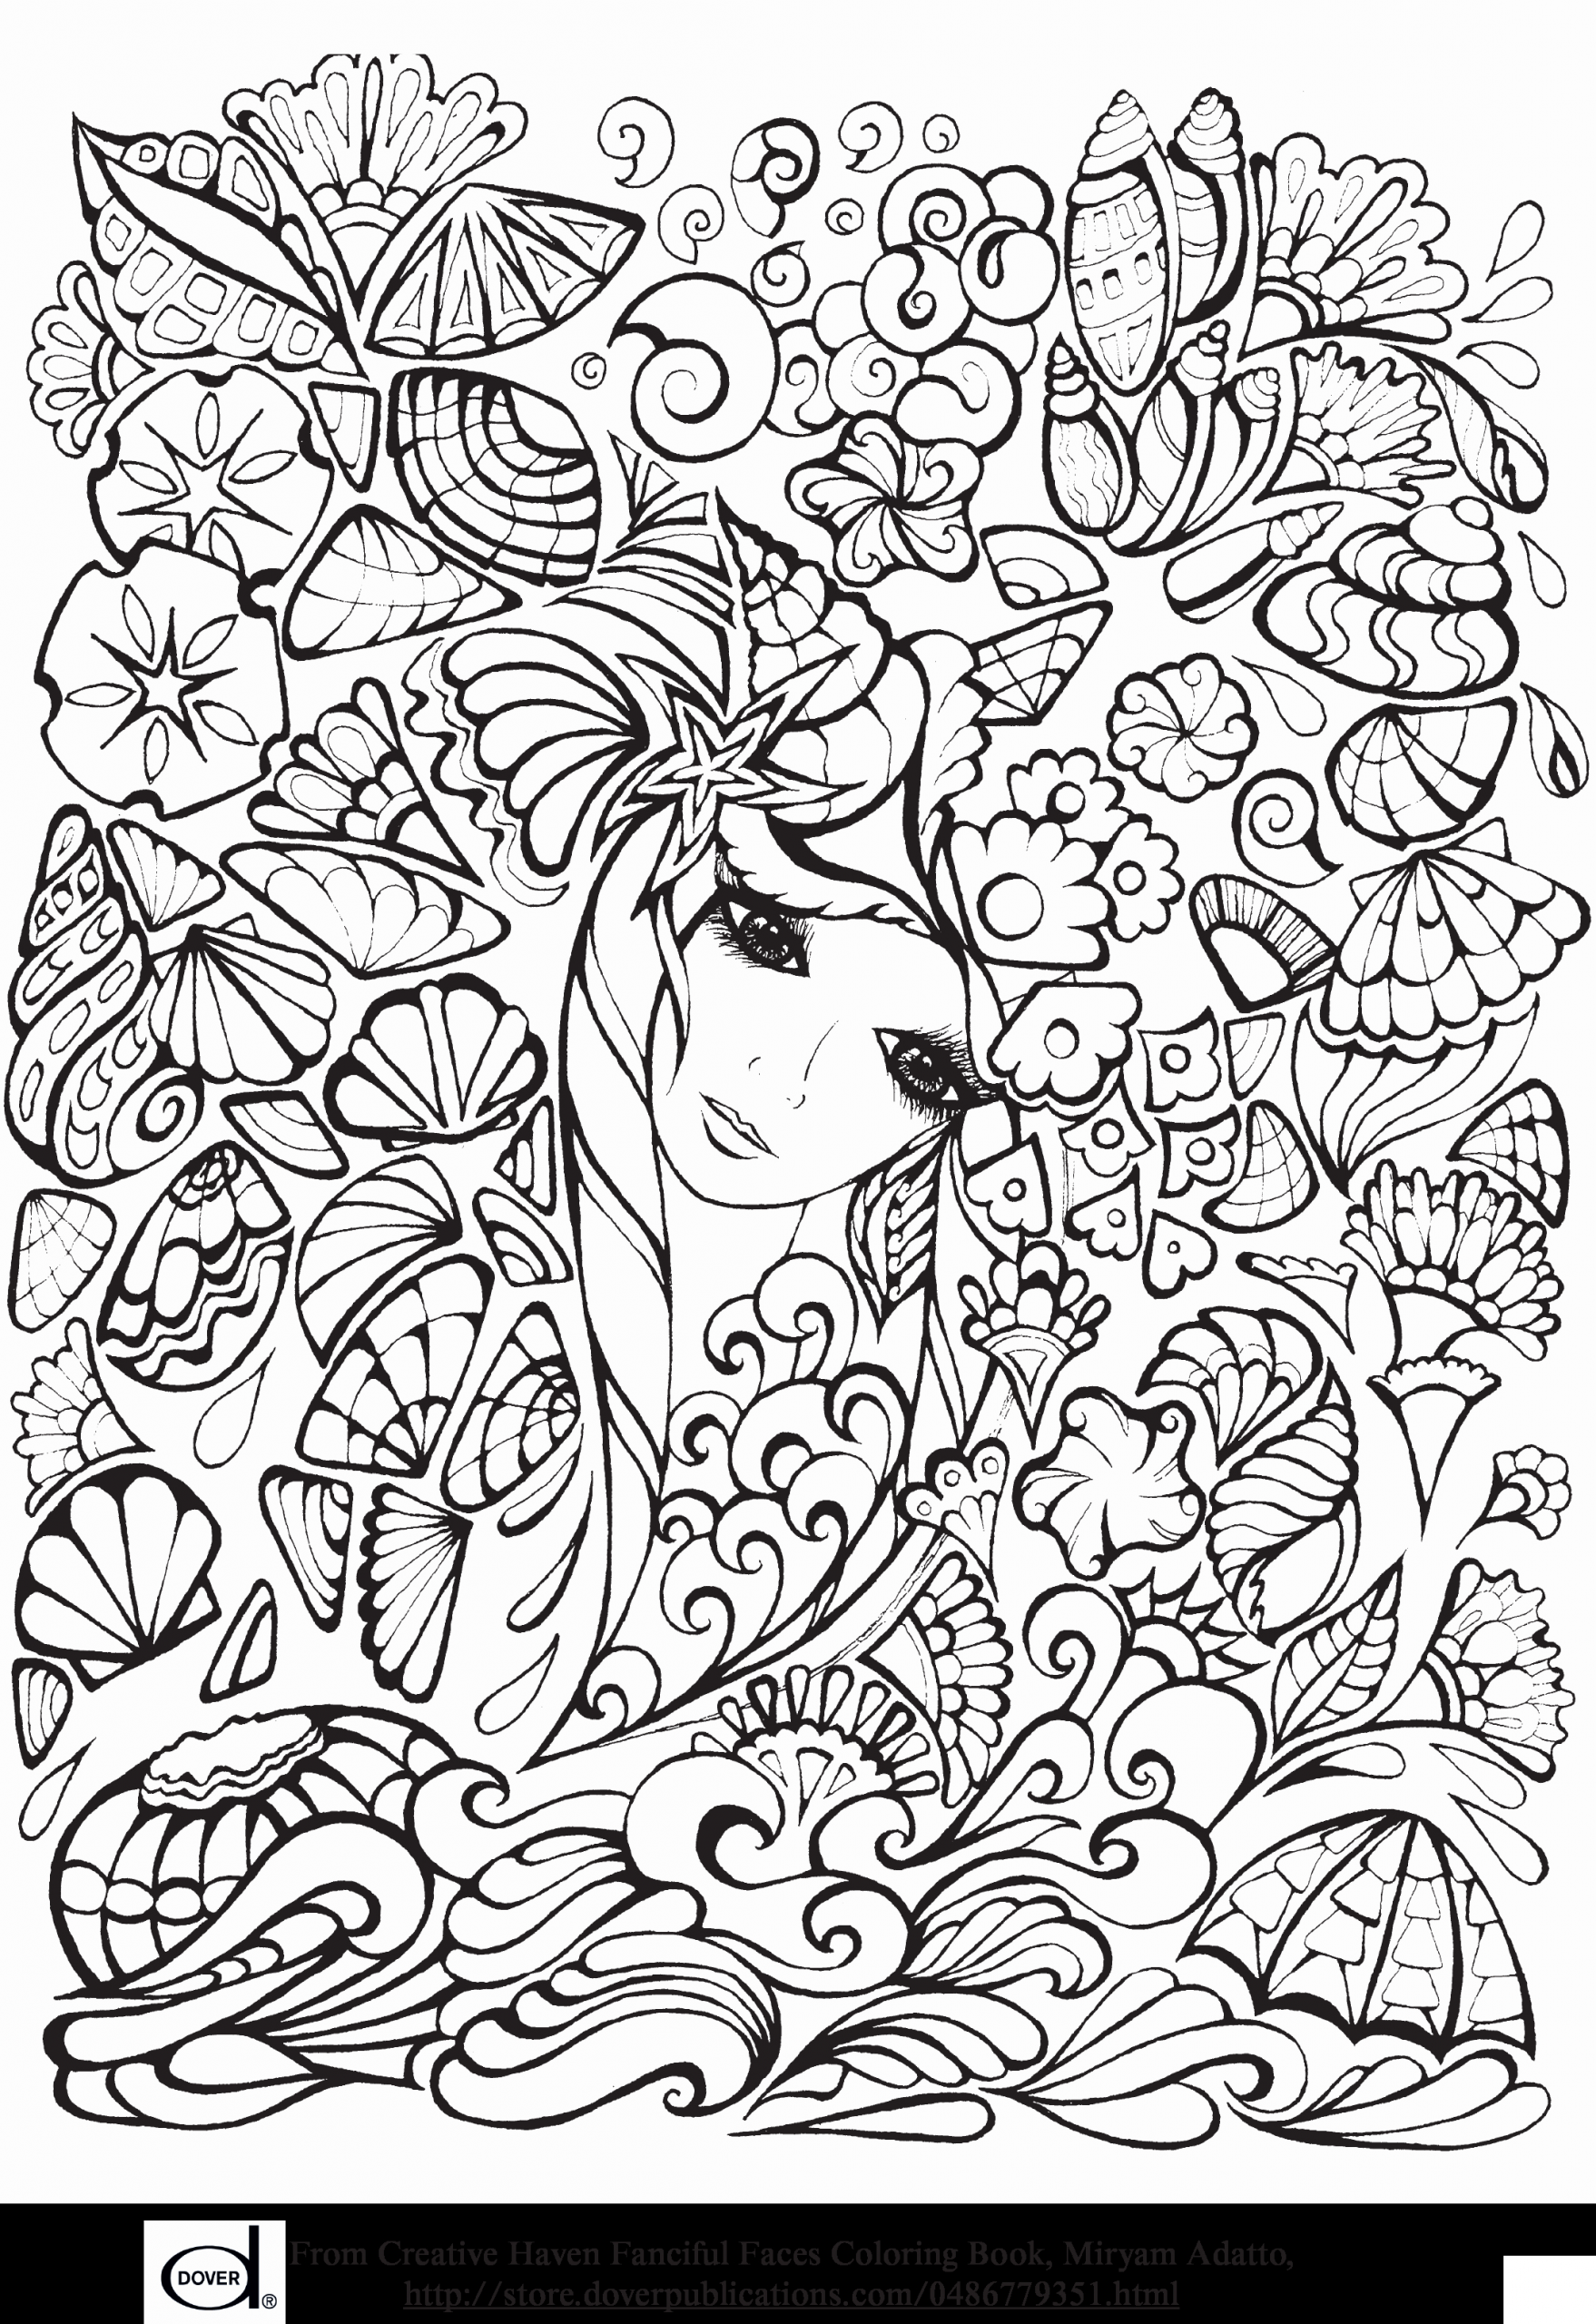 Top Interactive Coloring Pages For Adults In 2021 Designs Coloring Books Princess Coloring Pages Tinkerbell Coloring Pages